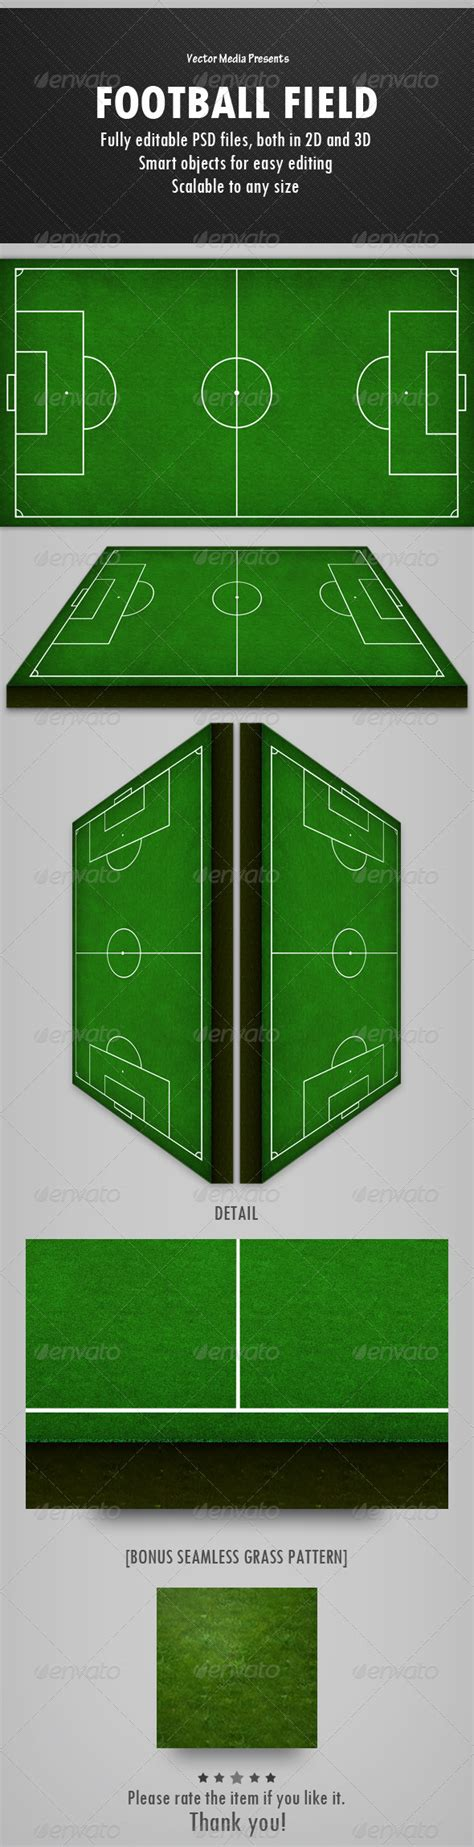 pattern photoshop football graphics football field graphicriver